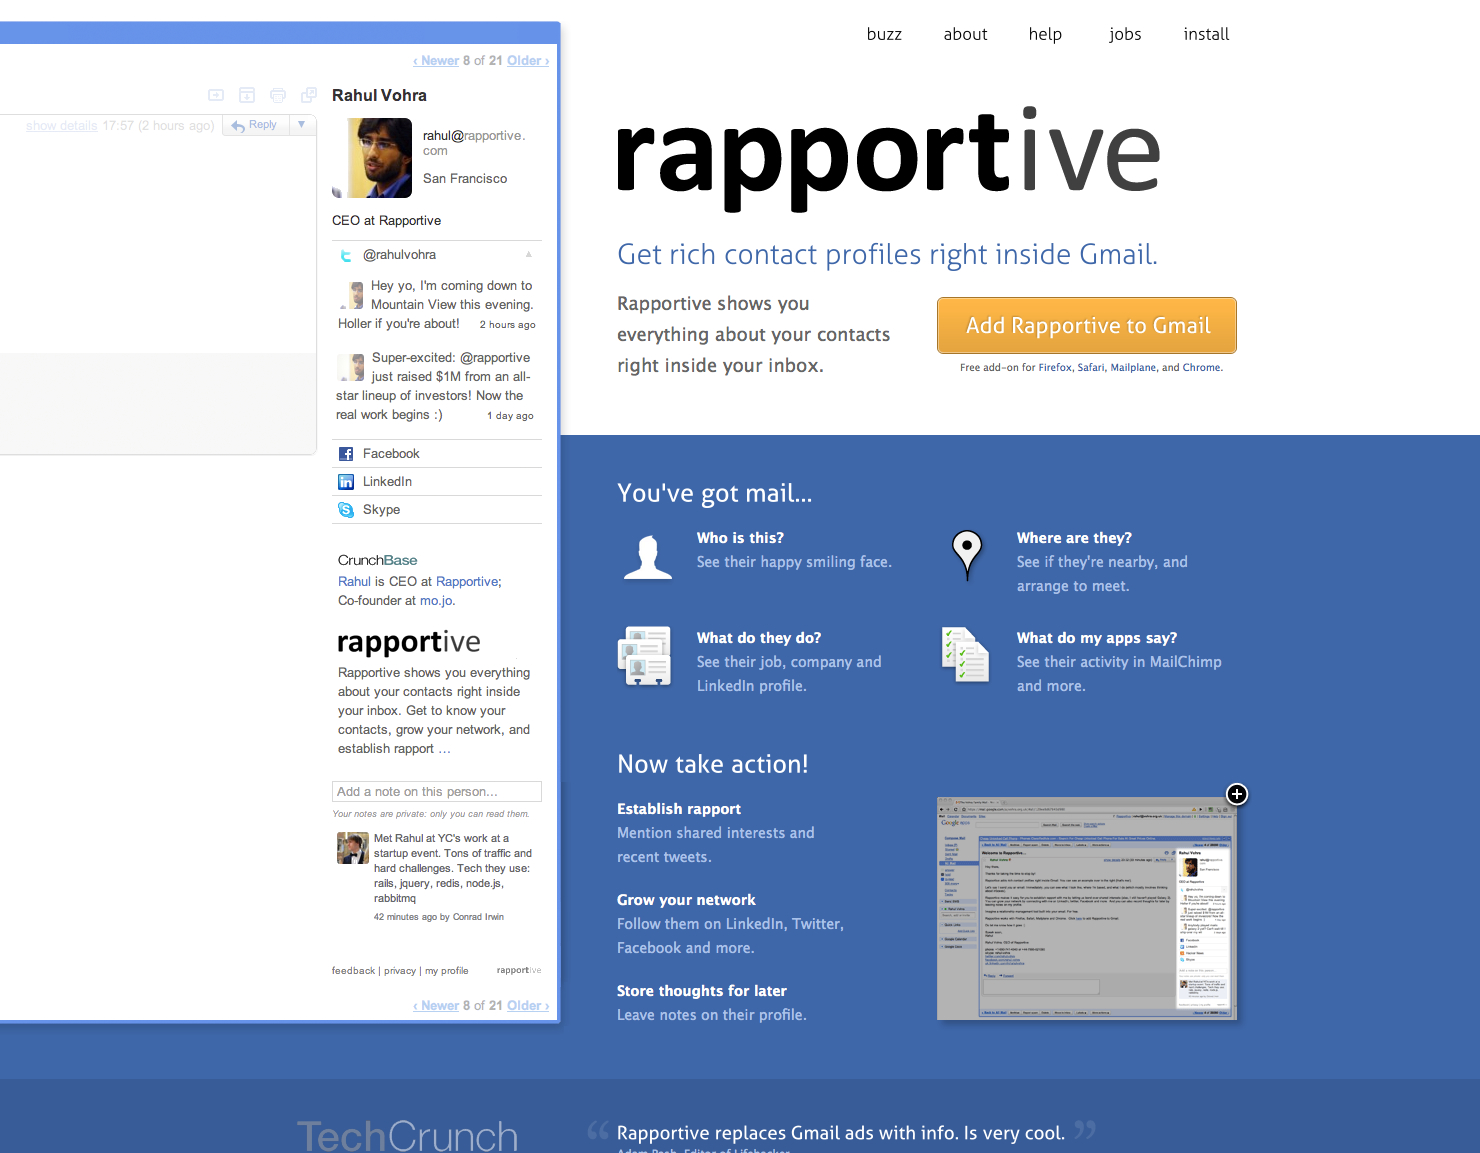 Rapportive 2014-05-18 15-46-06 2014-05-18 15-46-09